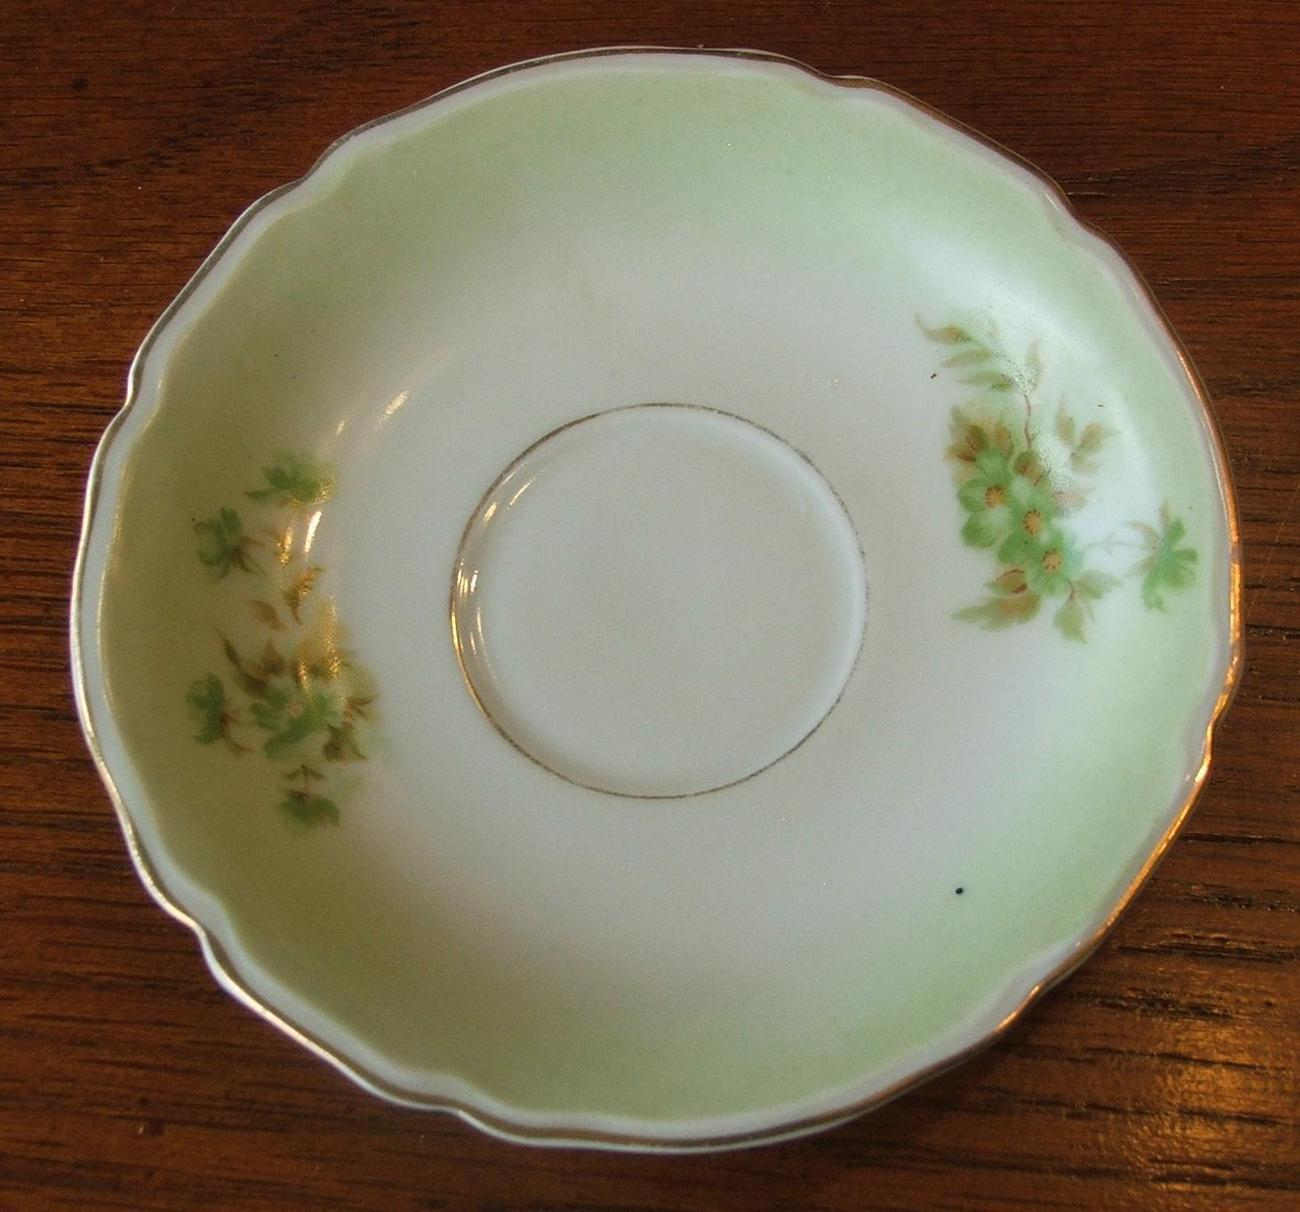 Greenfloral plate